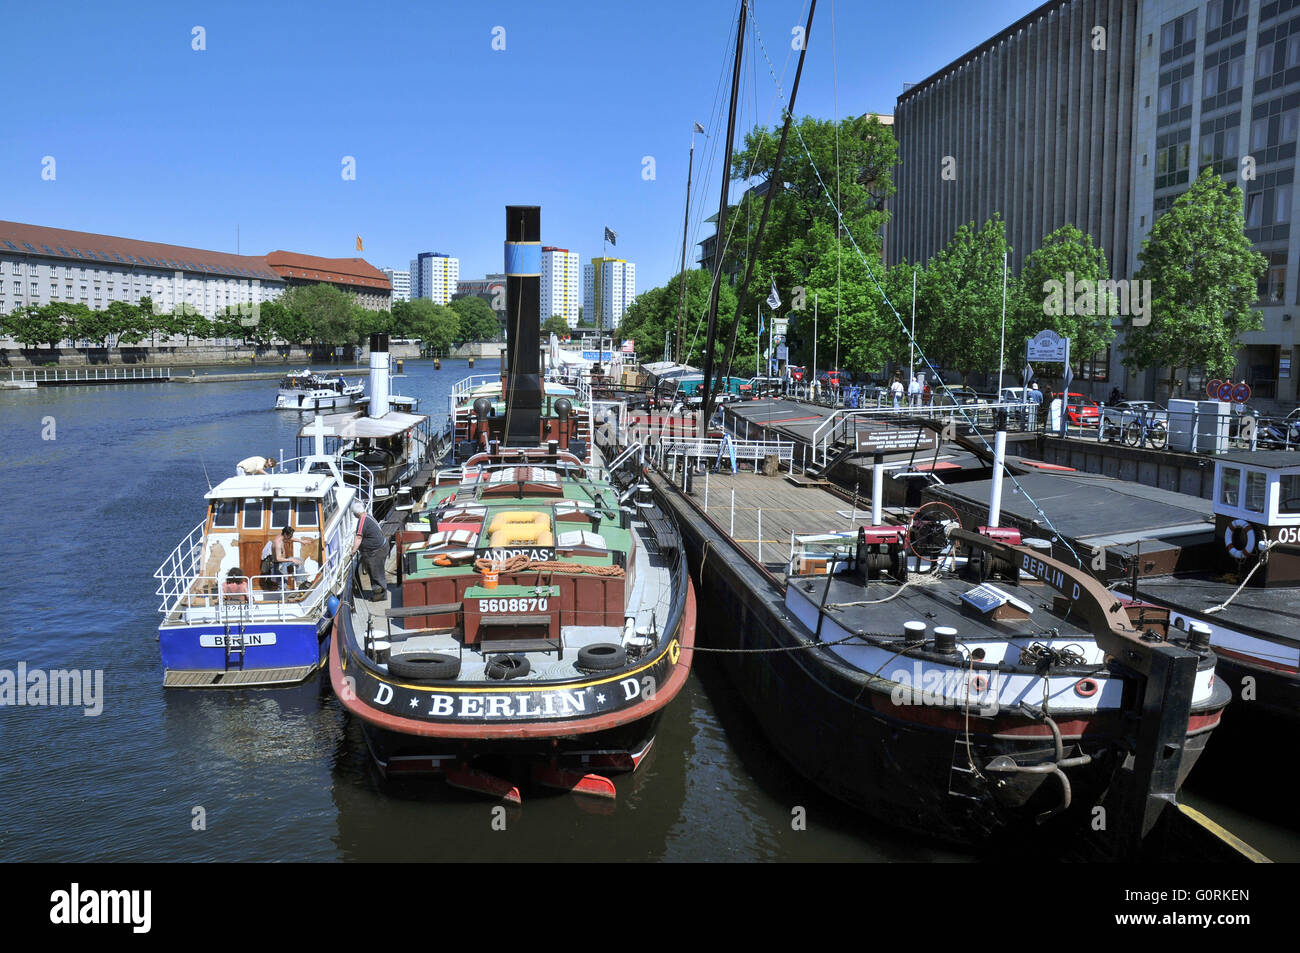 Historic Harbour, Markisches Ufer, Mitte, Berlin, Germany / Historischer Hafen, M?rkisches Ufer, Shore of the Mark - Stock Image